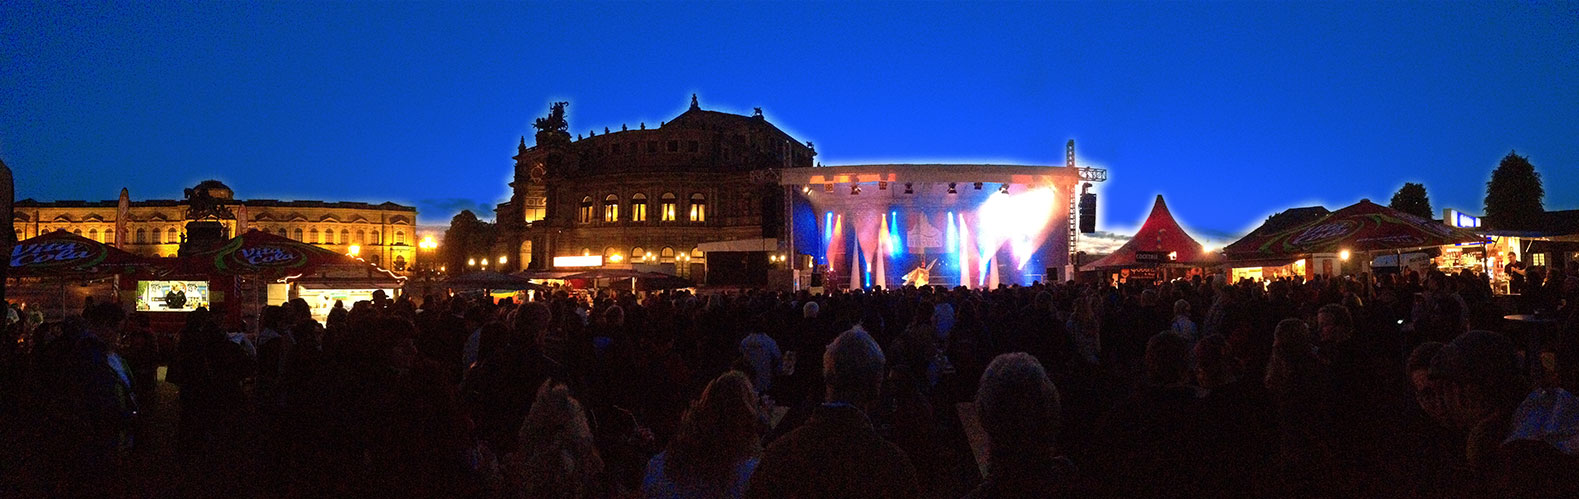 Theaterplatz Dresden CSD spotlightmusic